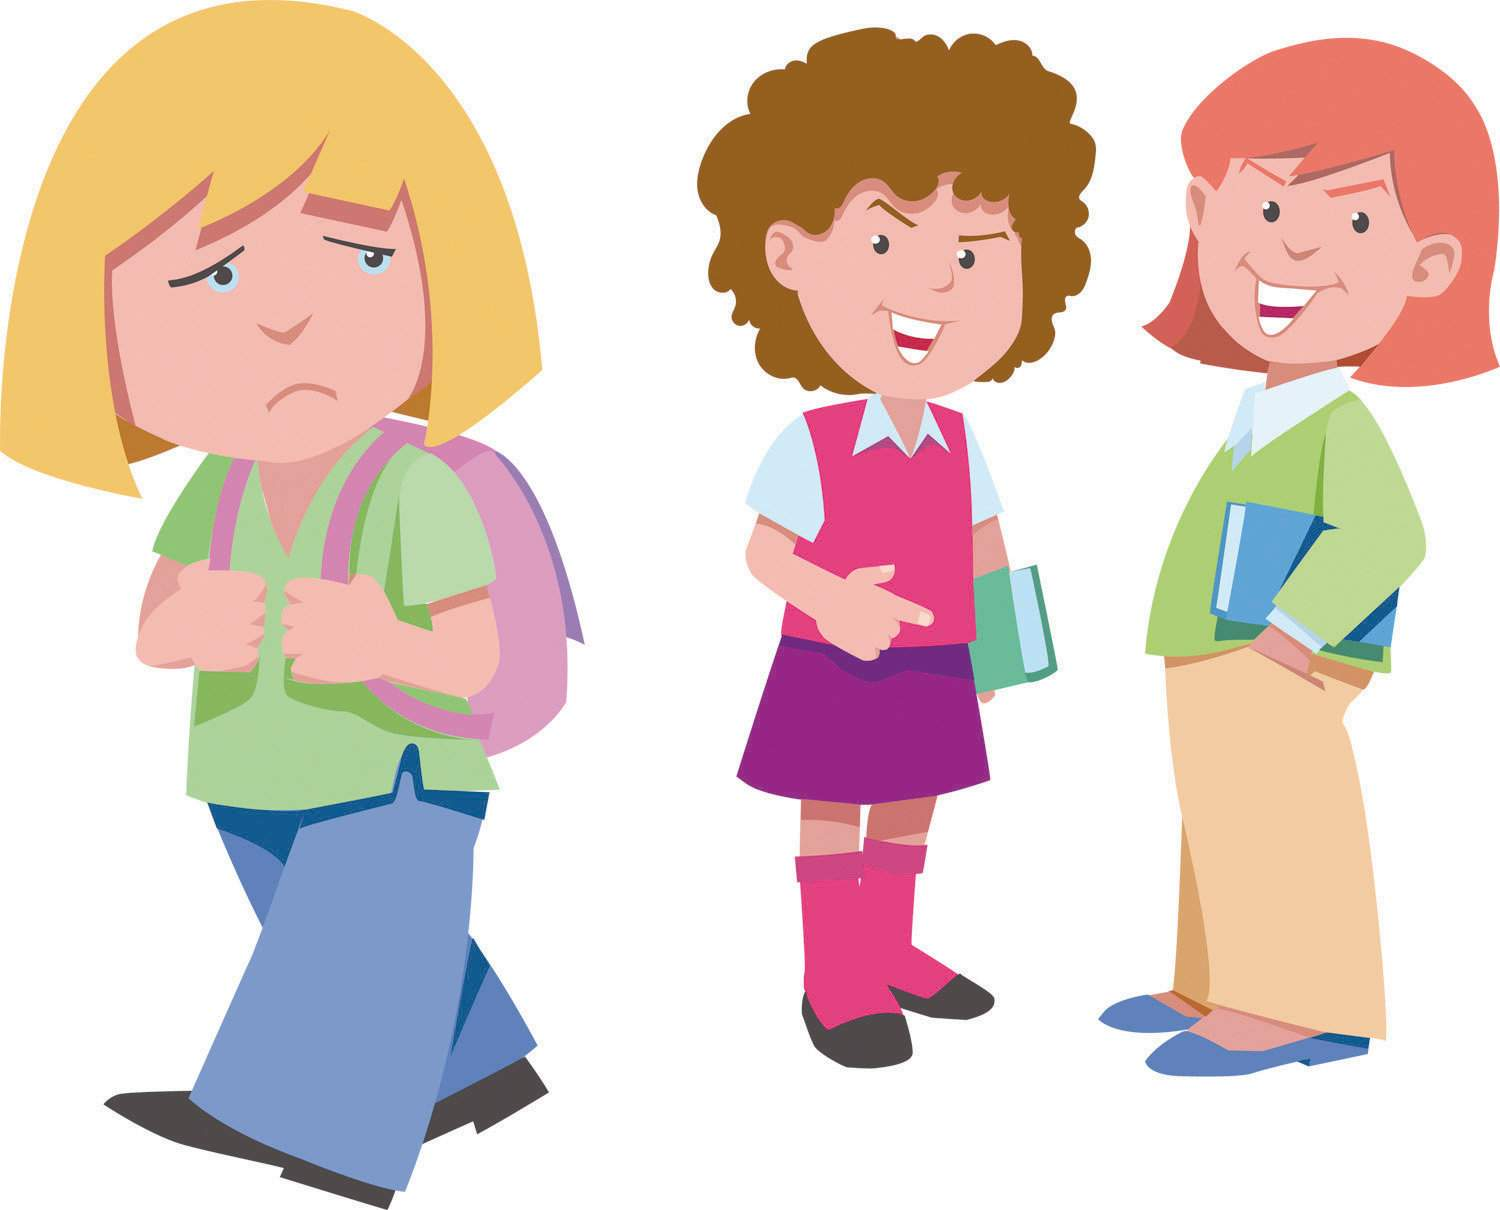 Bully clipart bully kid. Bullying images free download